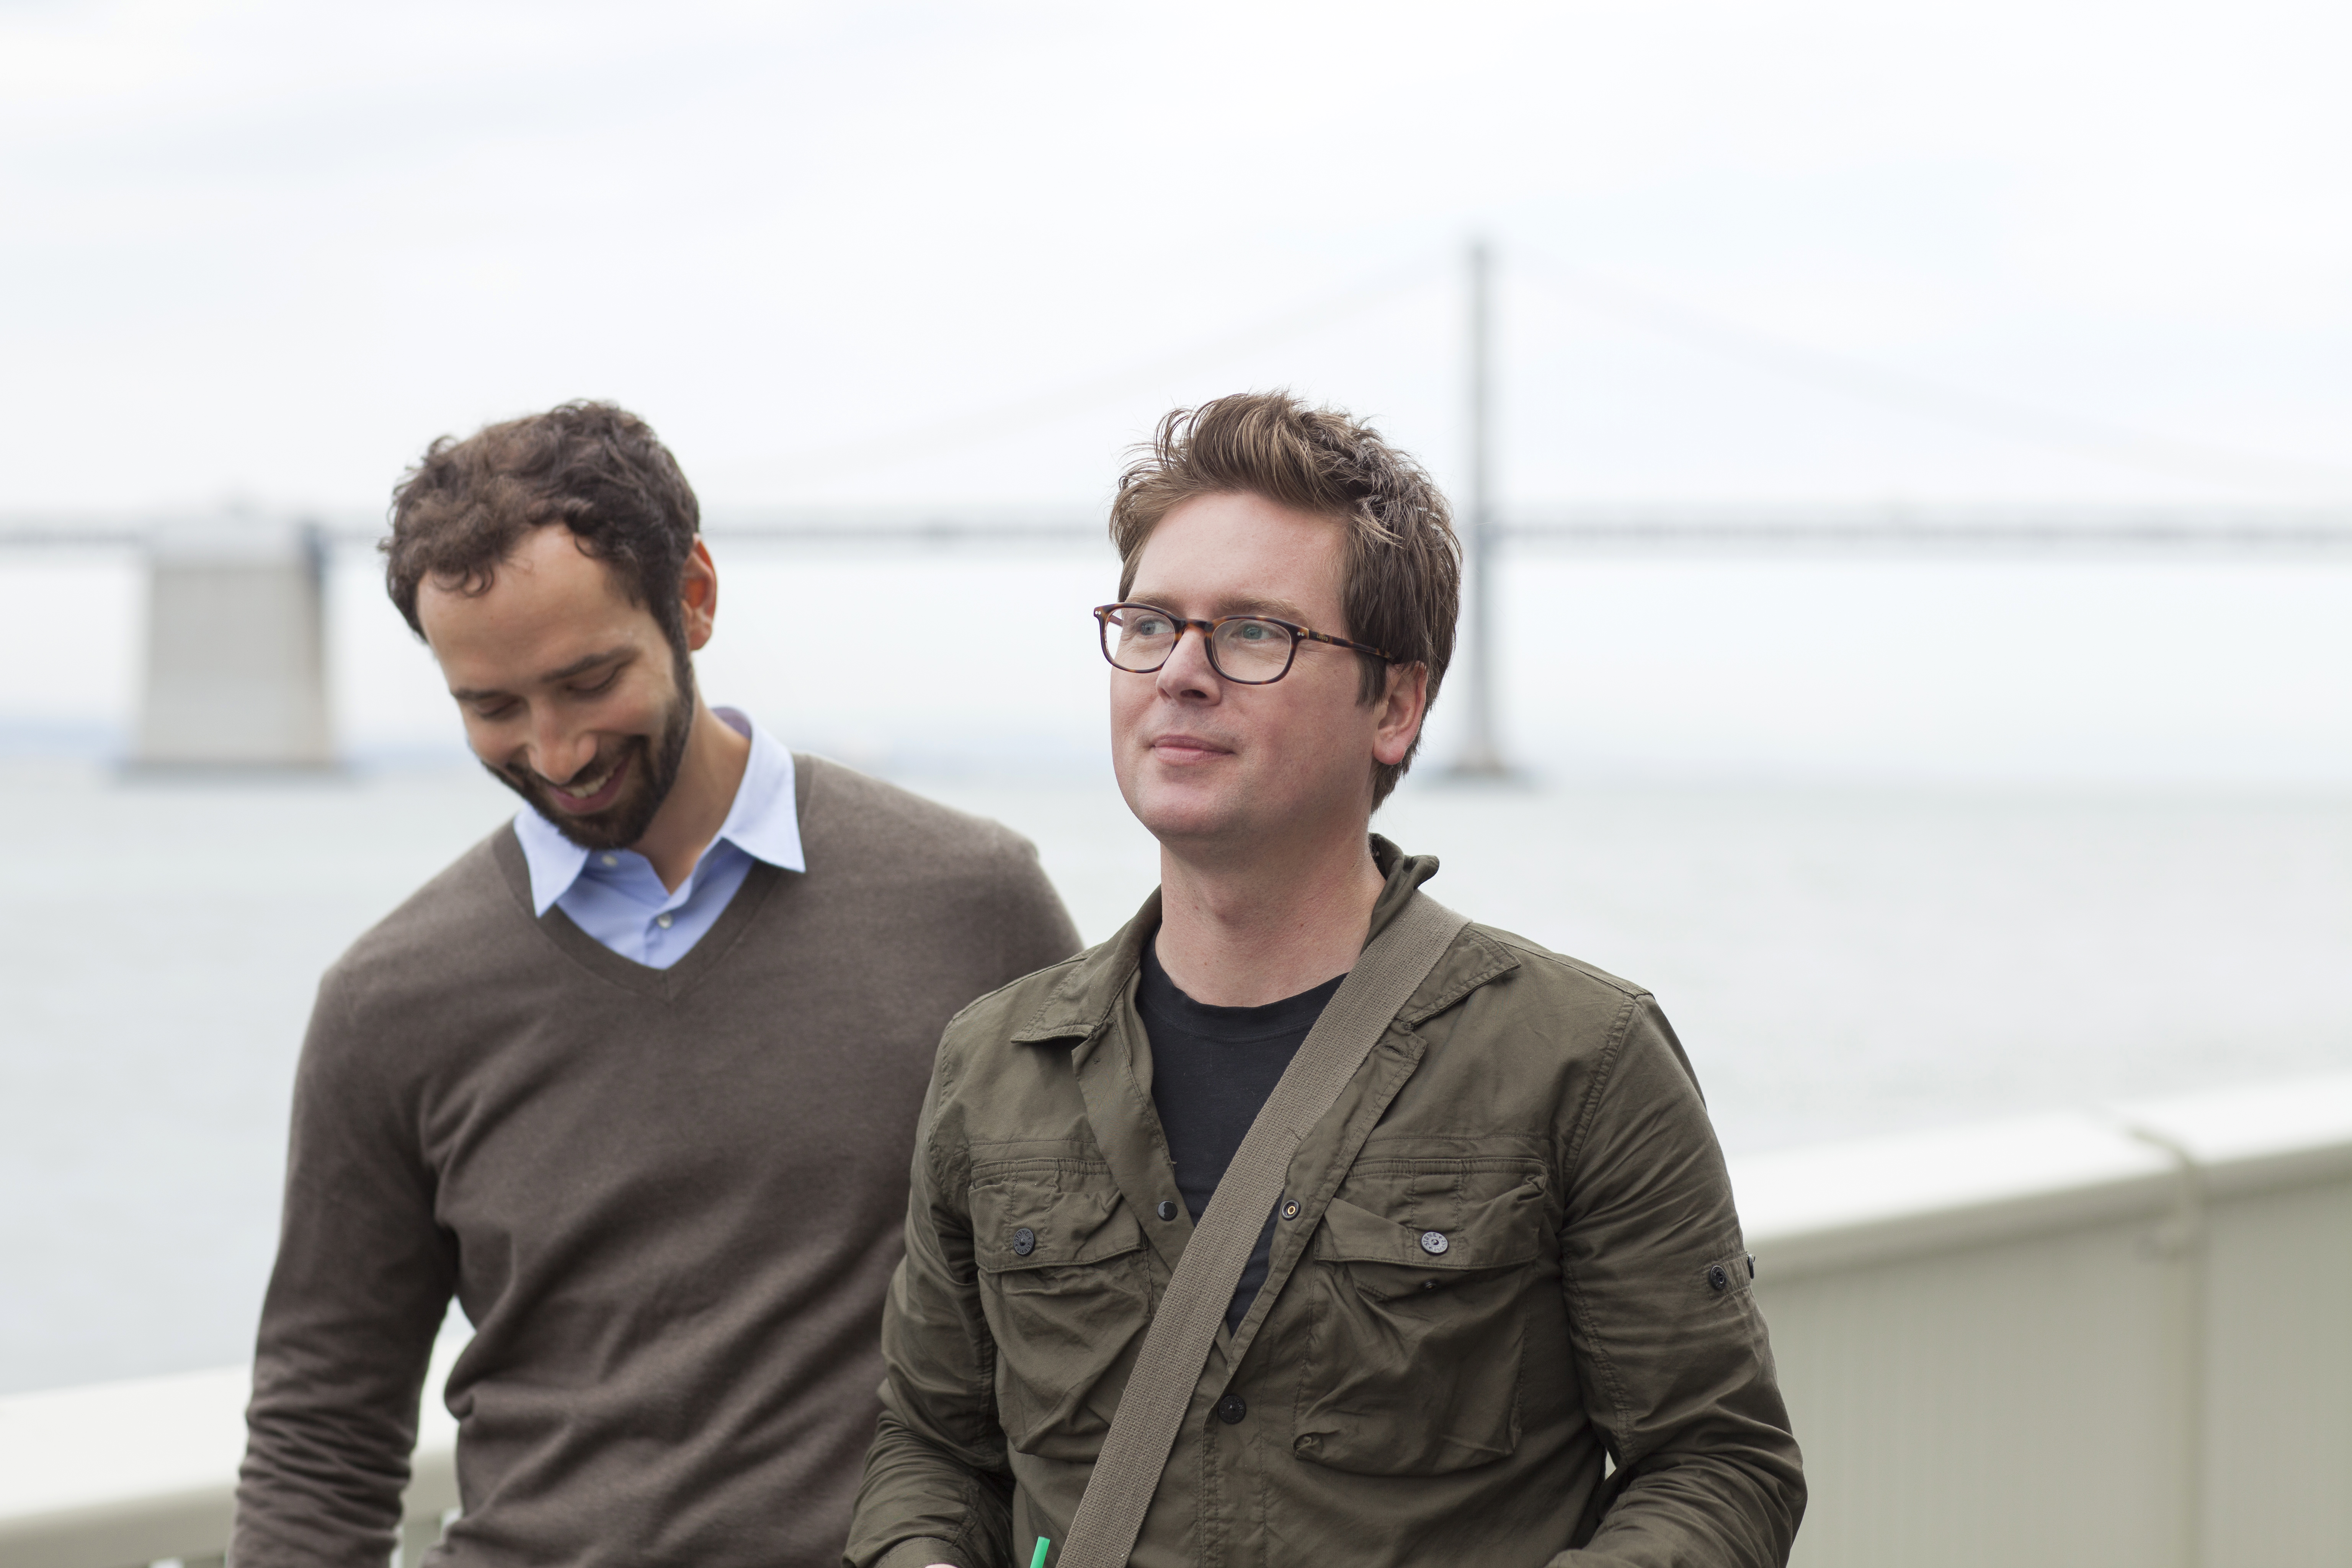 Jelly cofounders Ben Finkel (left) and Biz Stone (right)